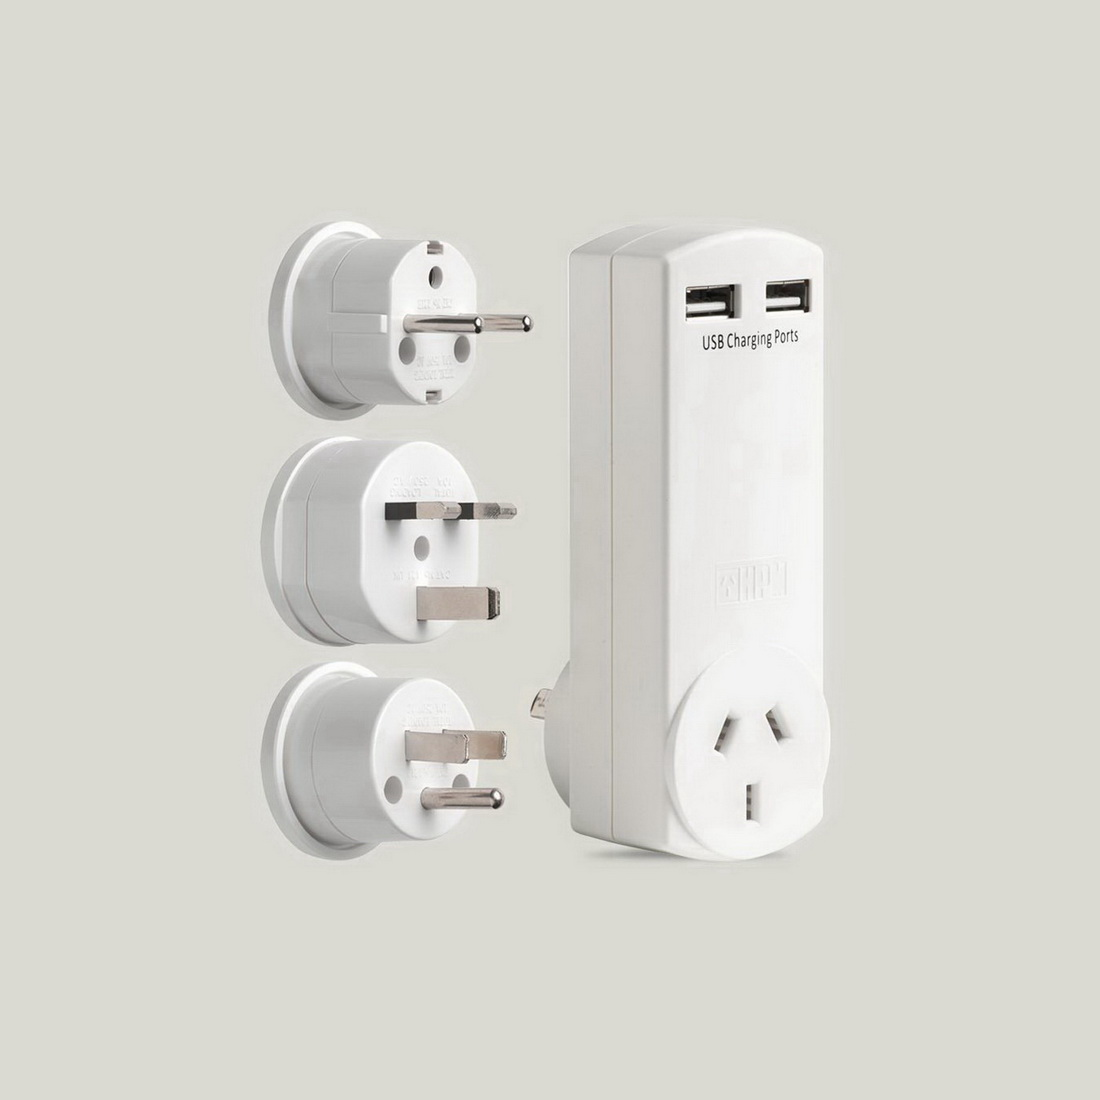 HPM 4.2AMP TRAVEL PLUGS WITH USB CHARGER